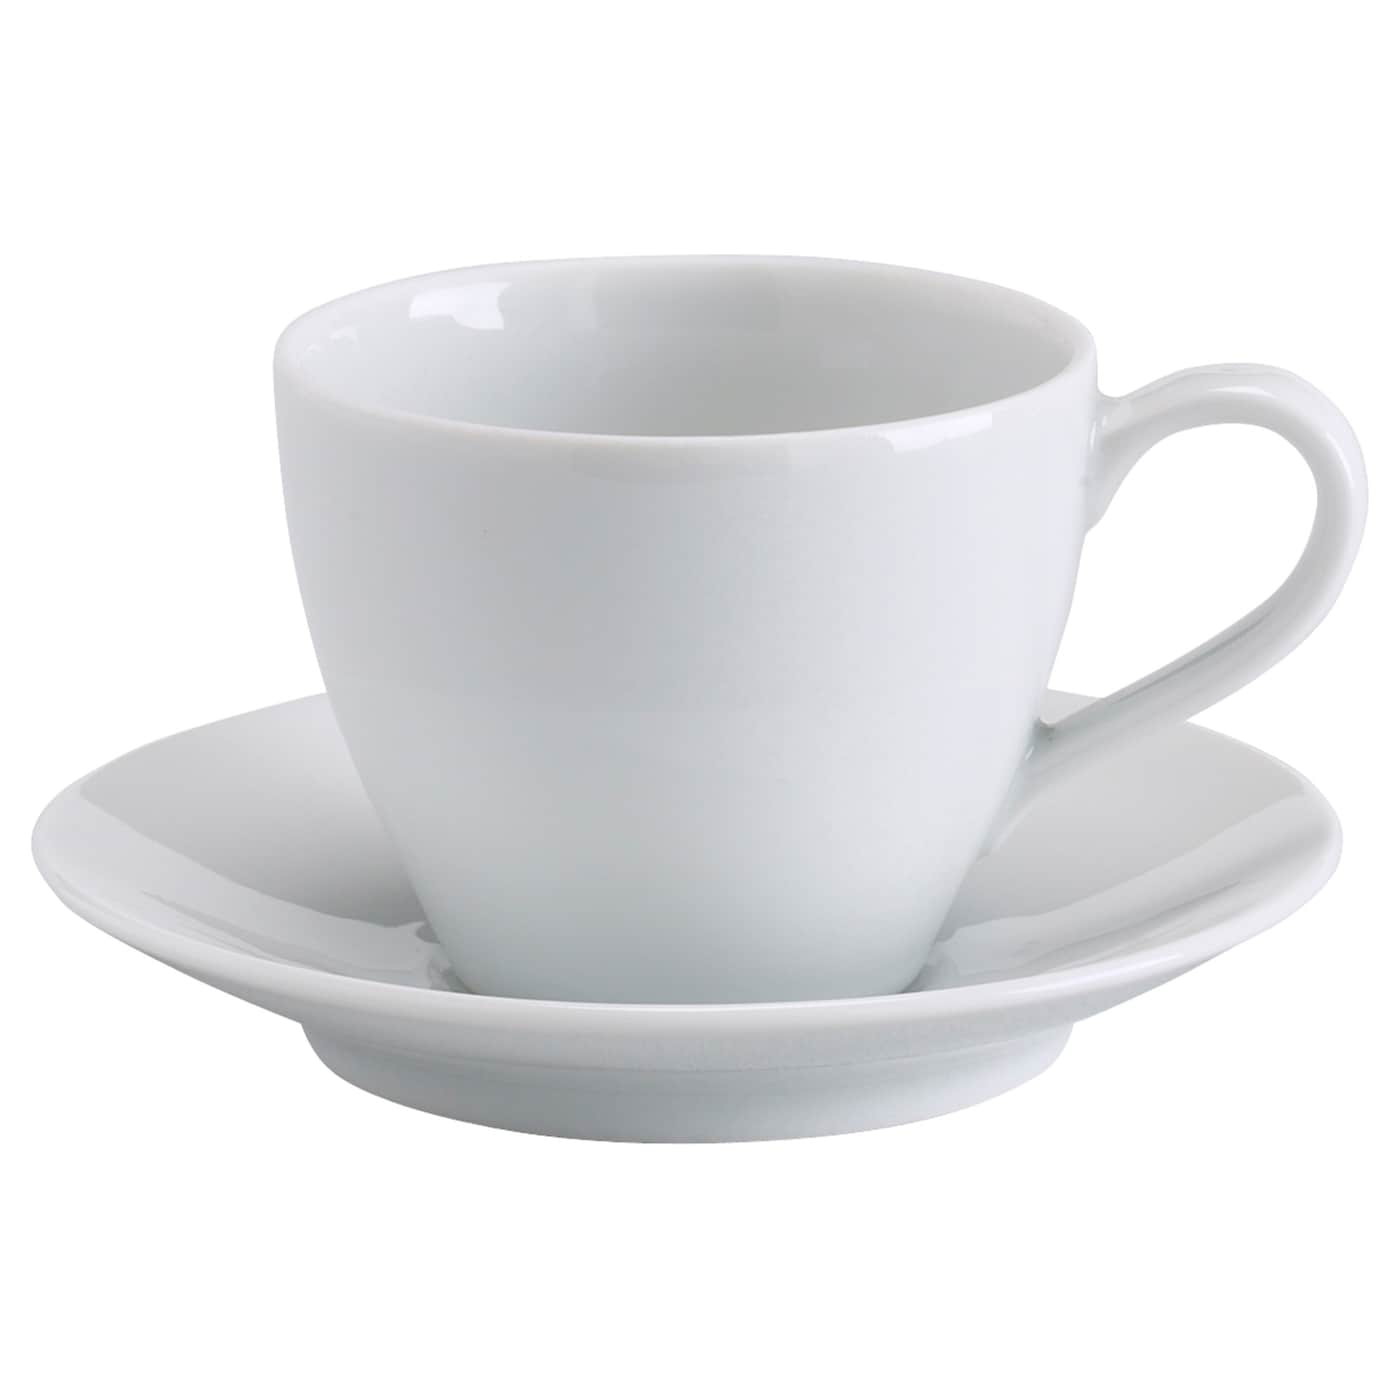 v rdera coffee cup and saucer white 20 cl ikea. Black Bedroom Furniture Sets. Home Design Ideas